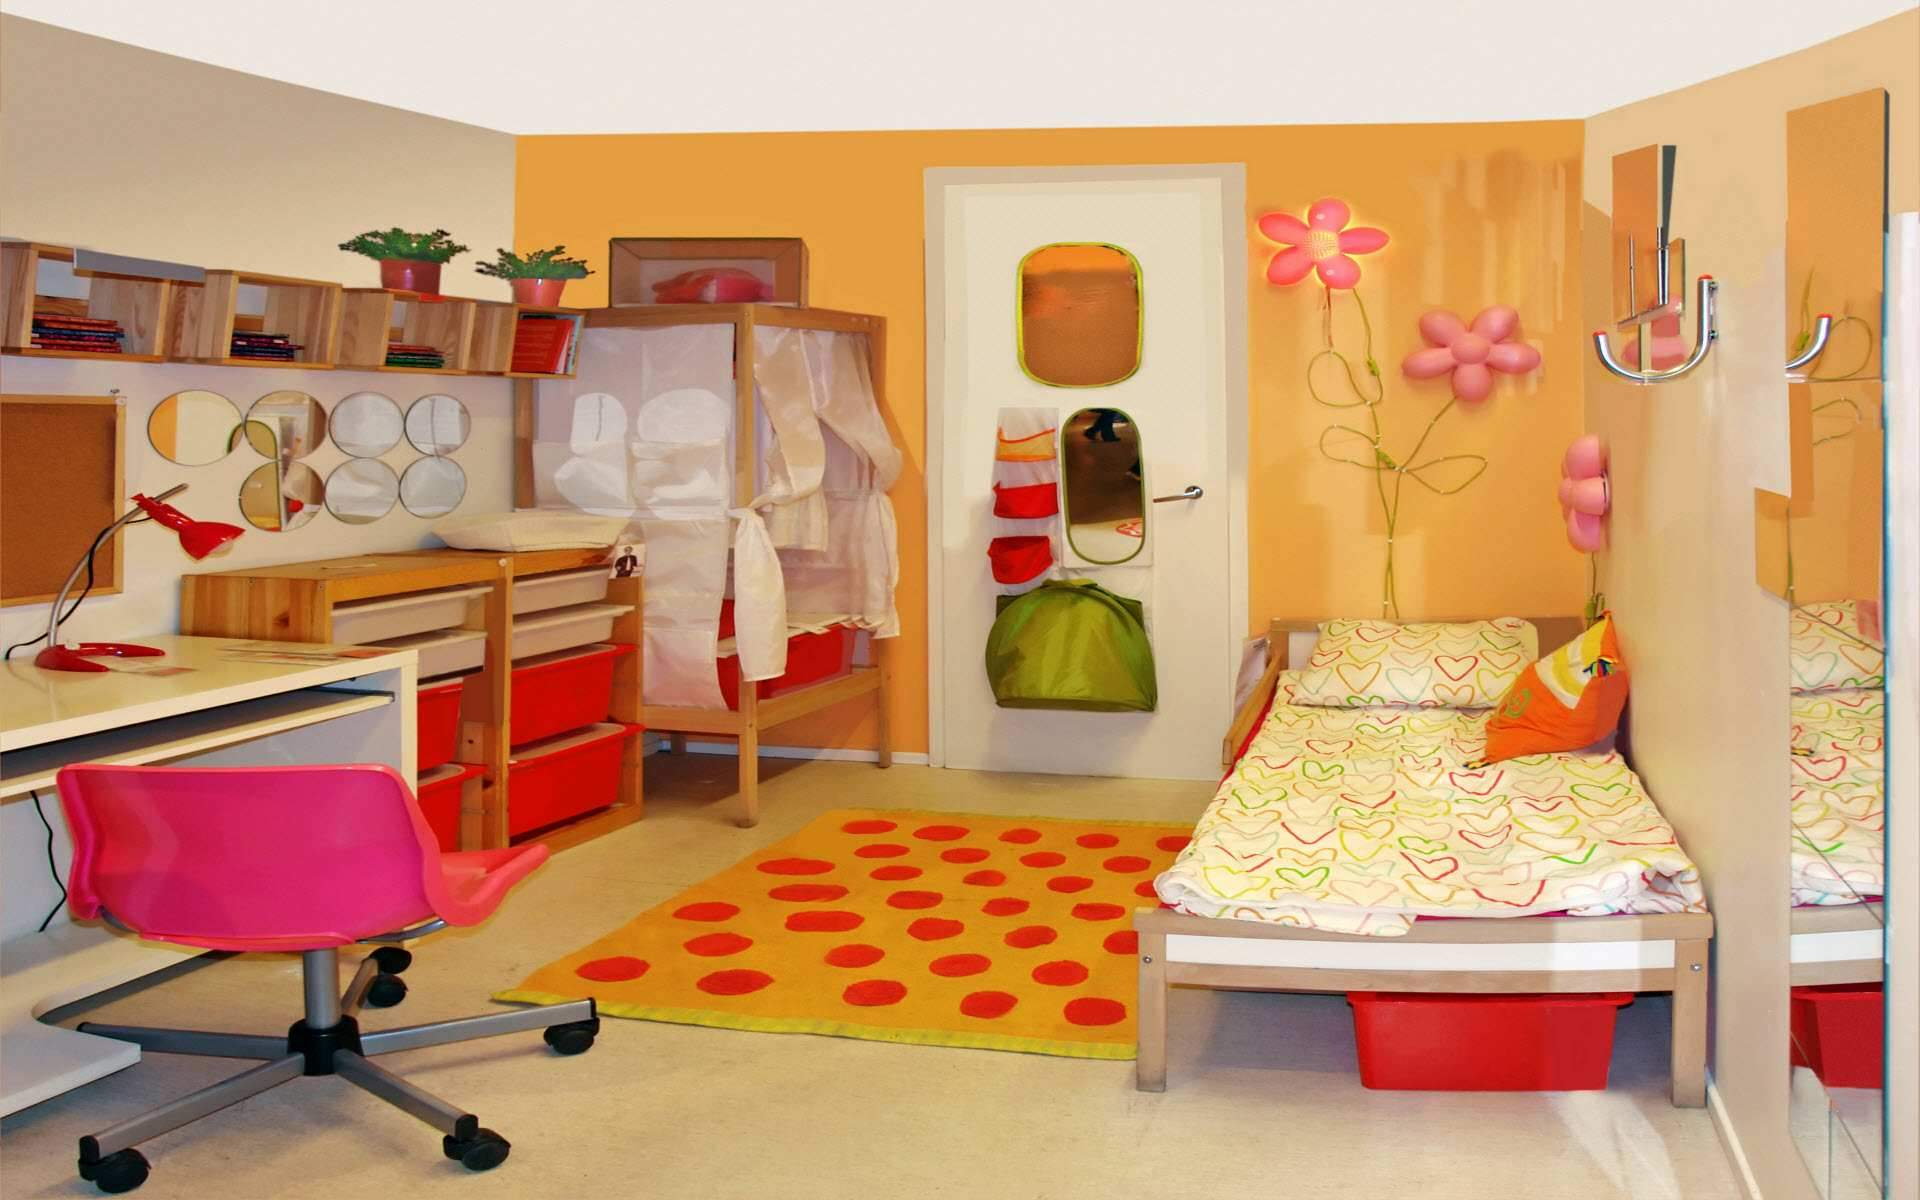 Unique Small Kids Room Decorating Ideas Image 012 Small Room Decorating Ideas